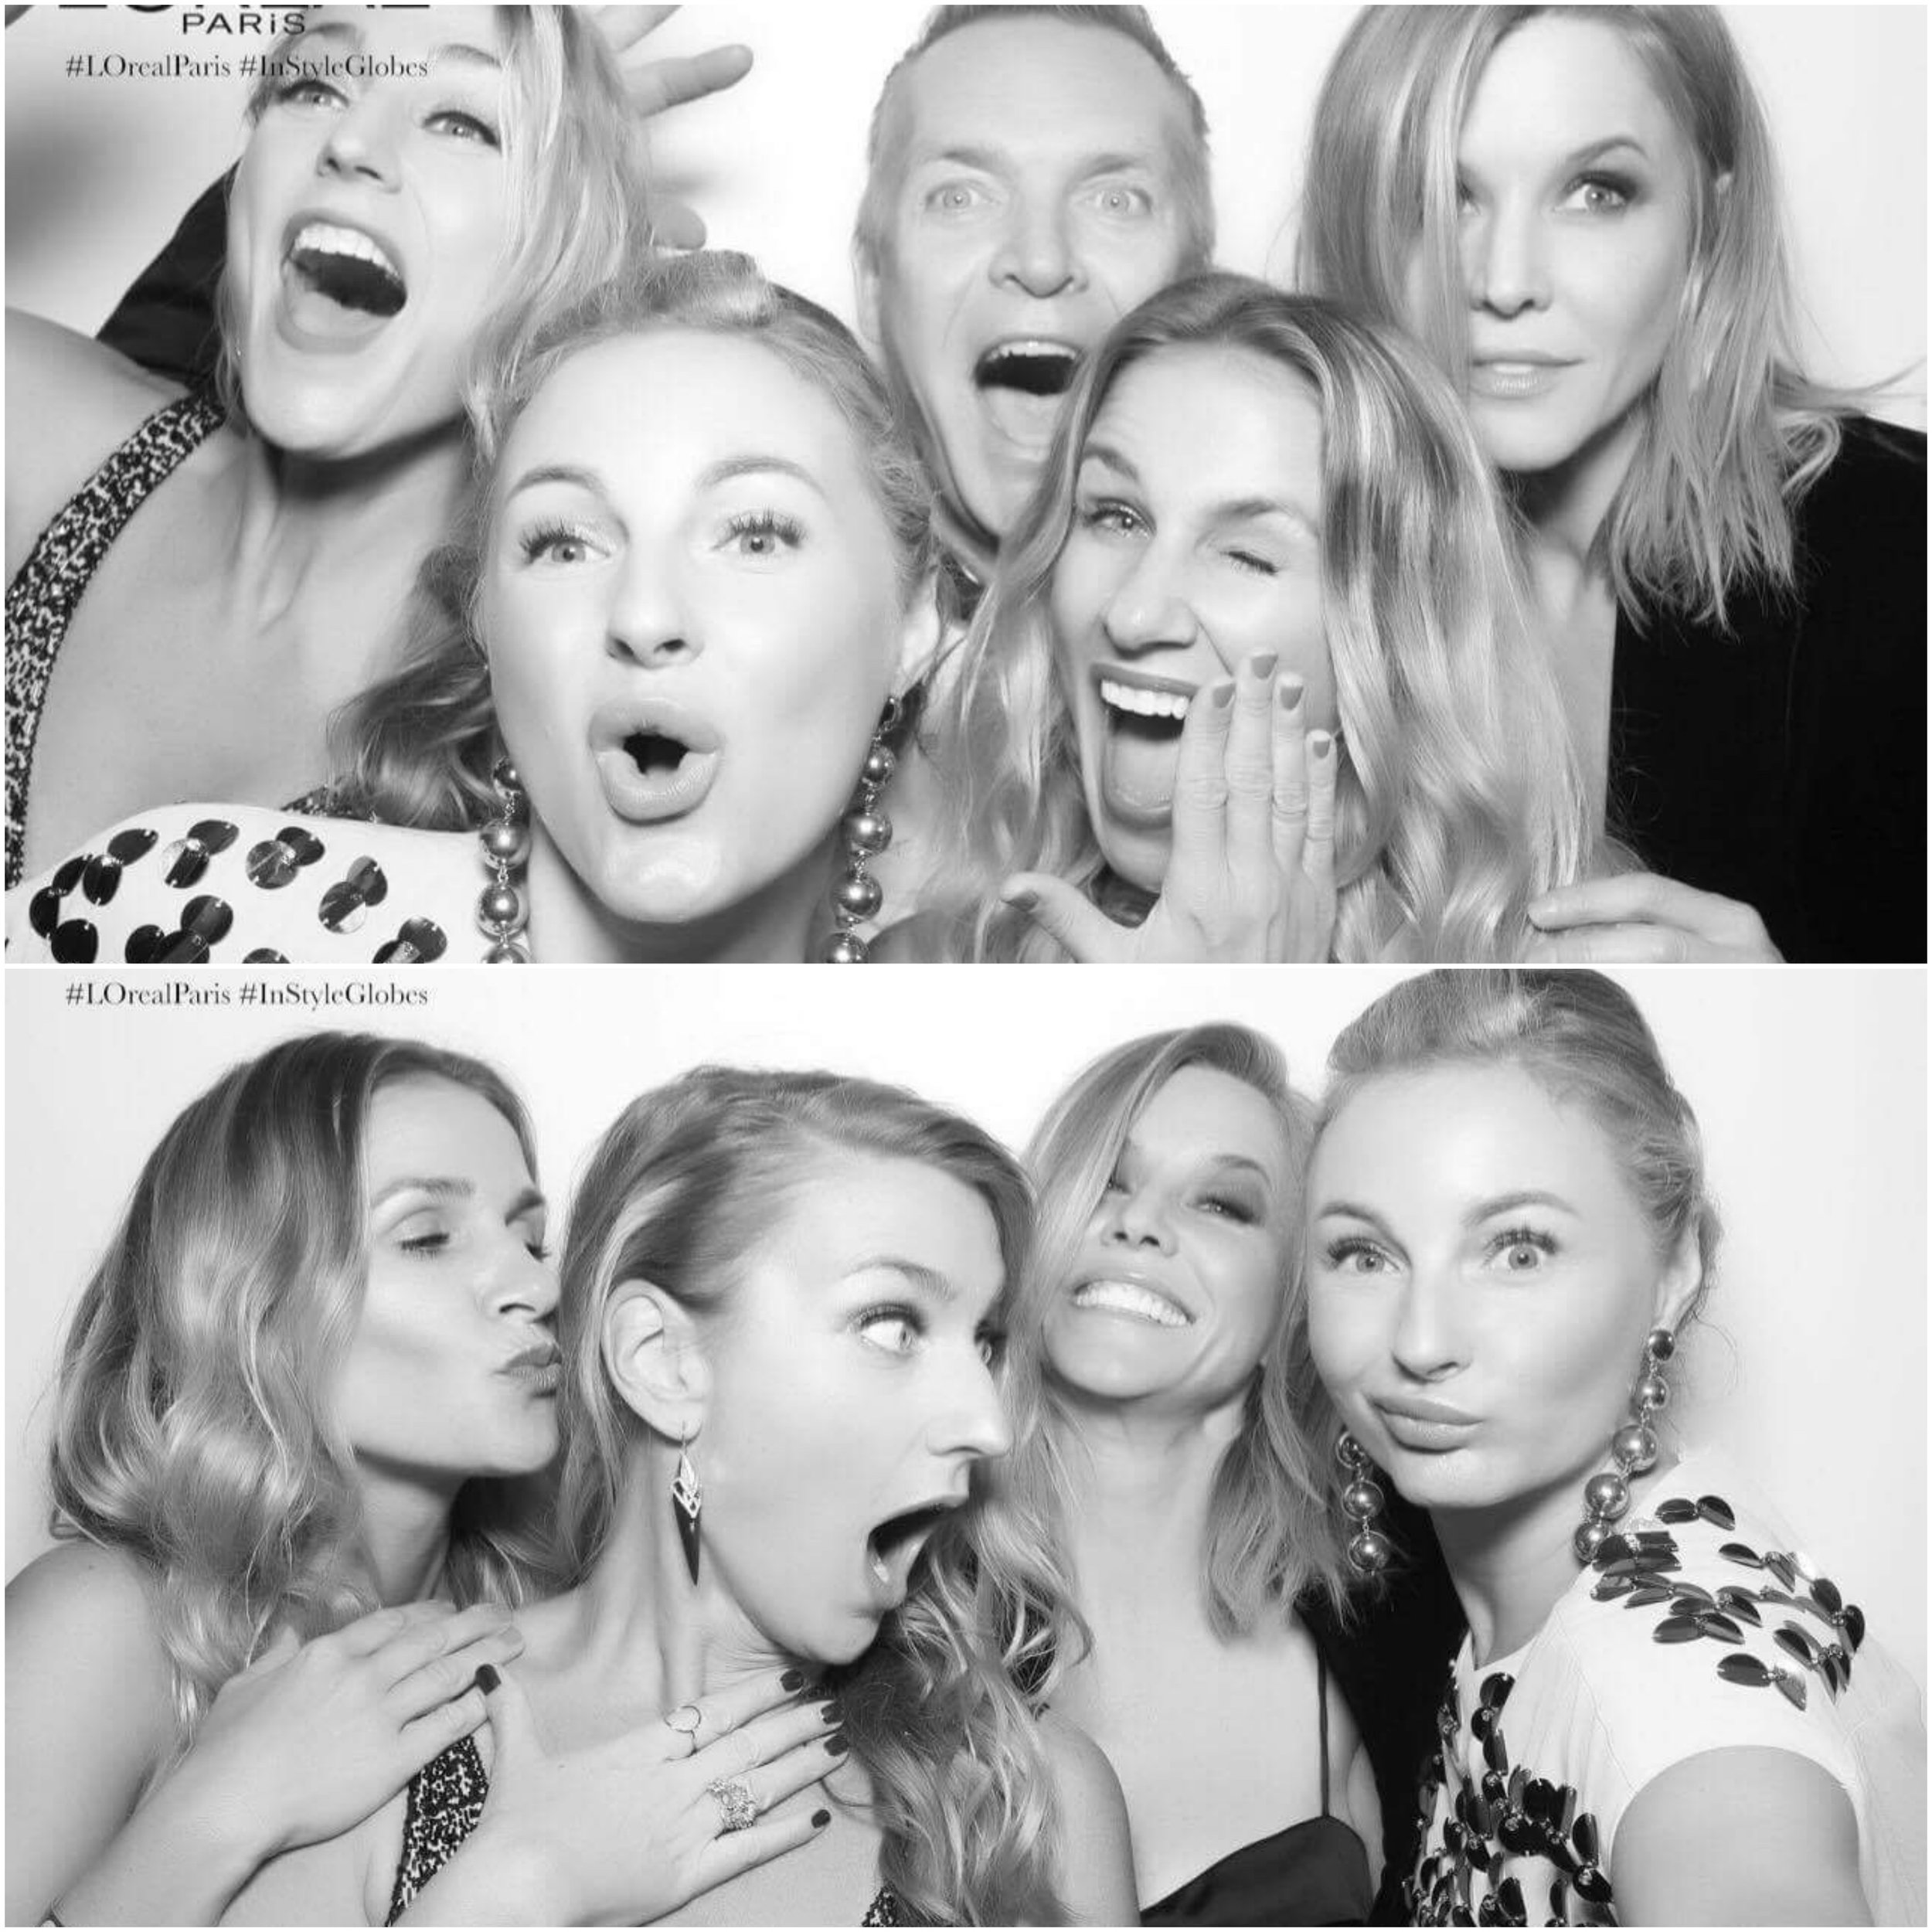 Having fun in the InStyle Party's photo booth!